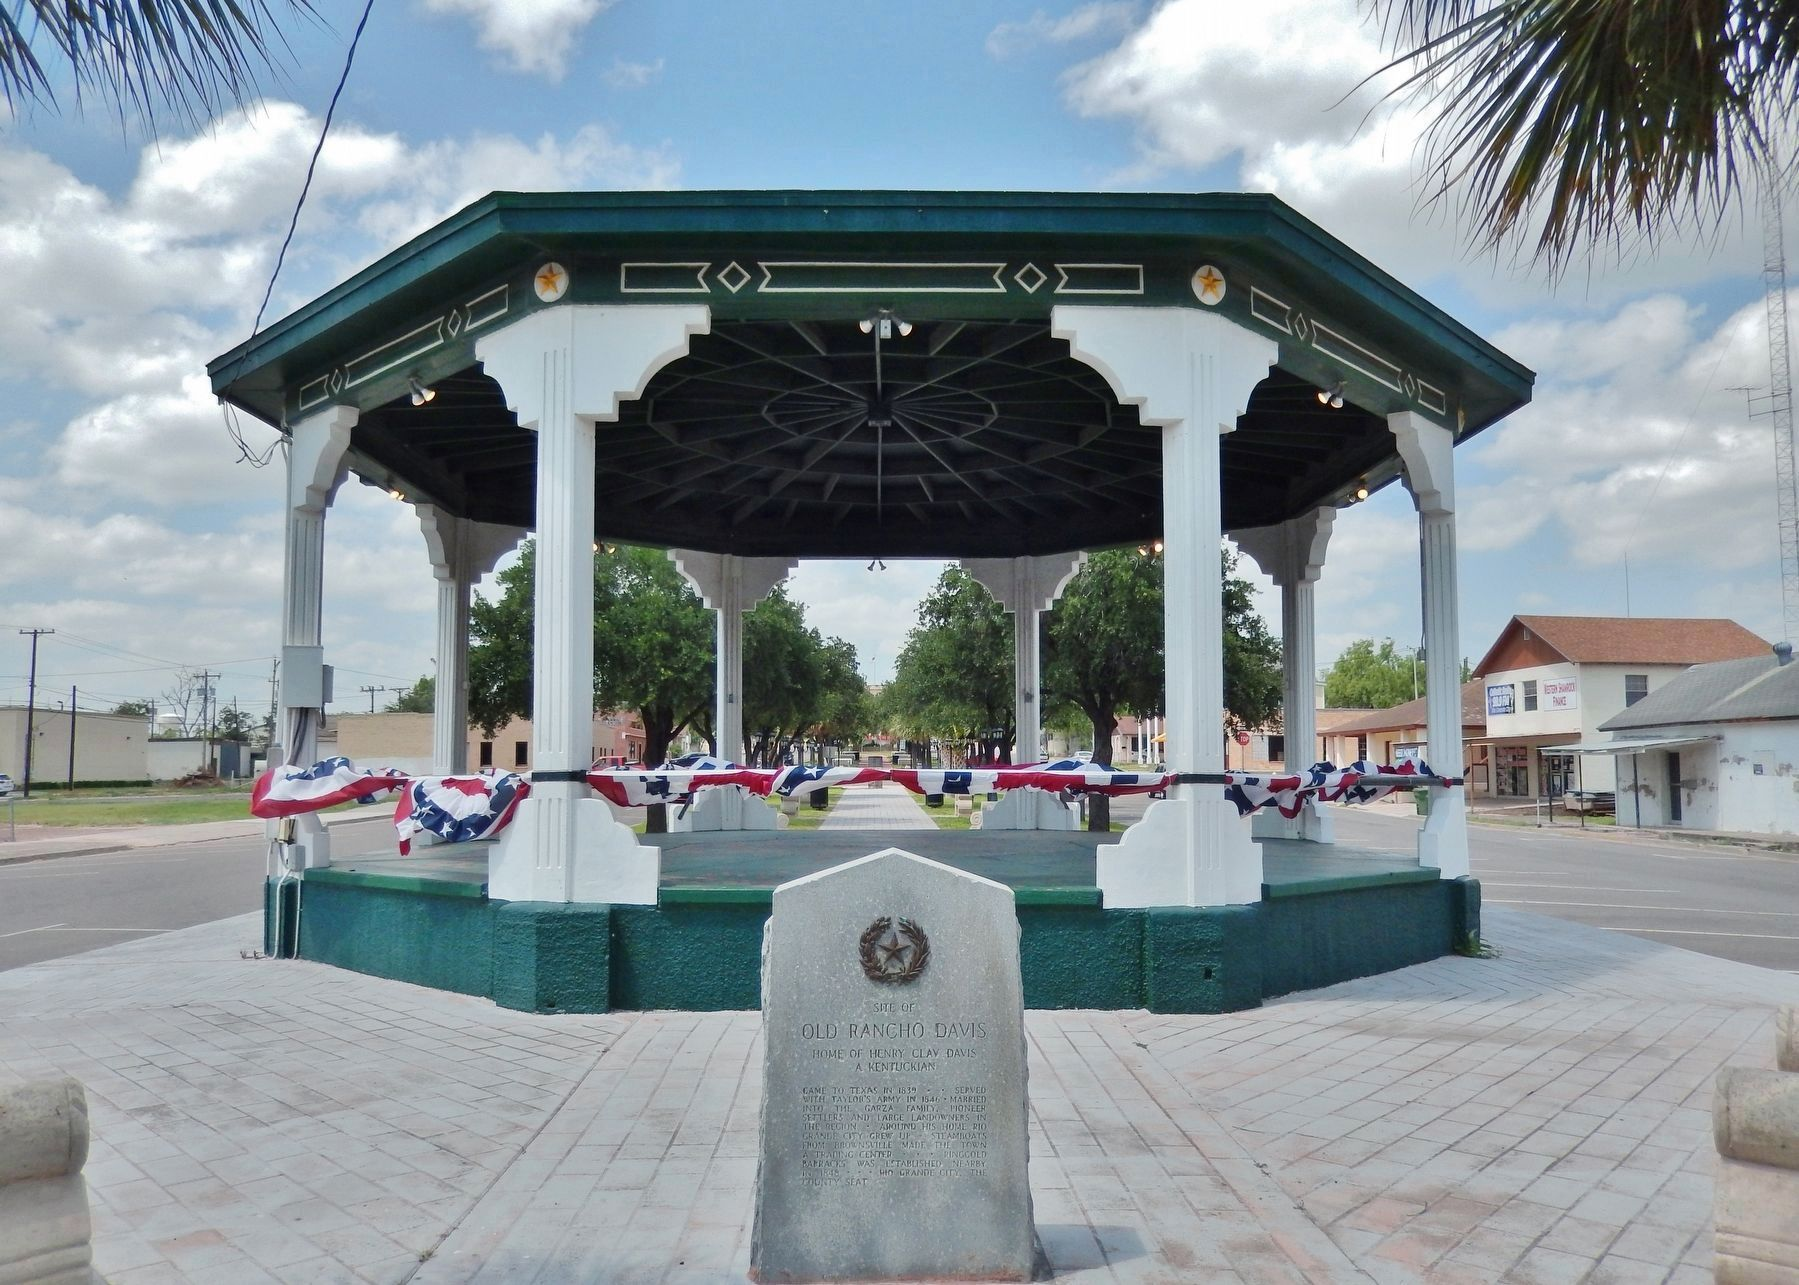 Site of Old Rancho Davis Marker (<i>wide view; gazebo and county plaza in background</i>) image. Click for full size.